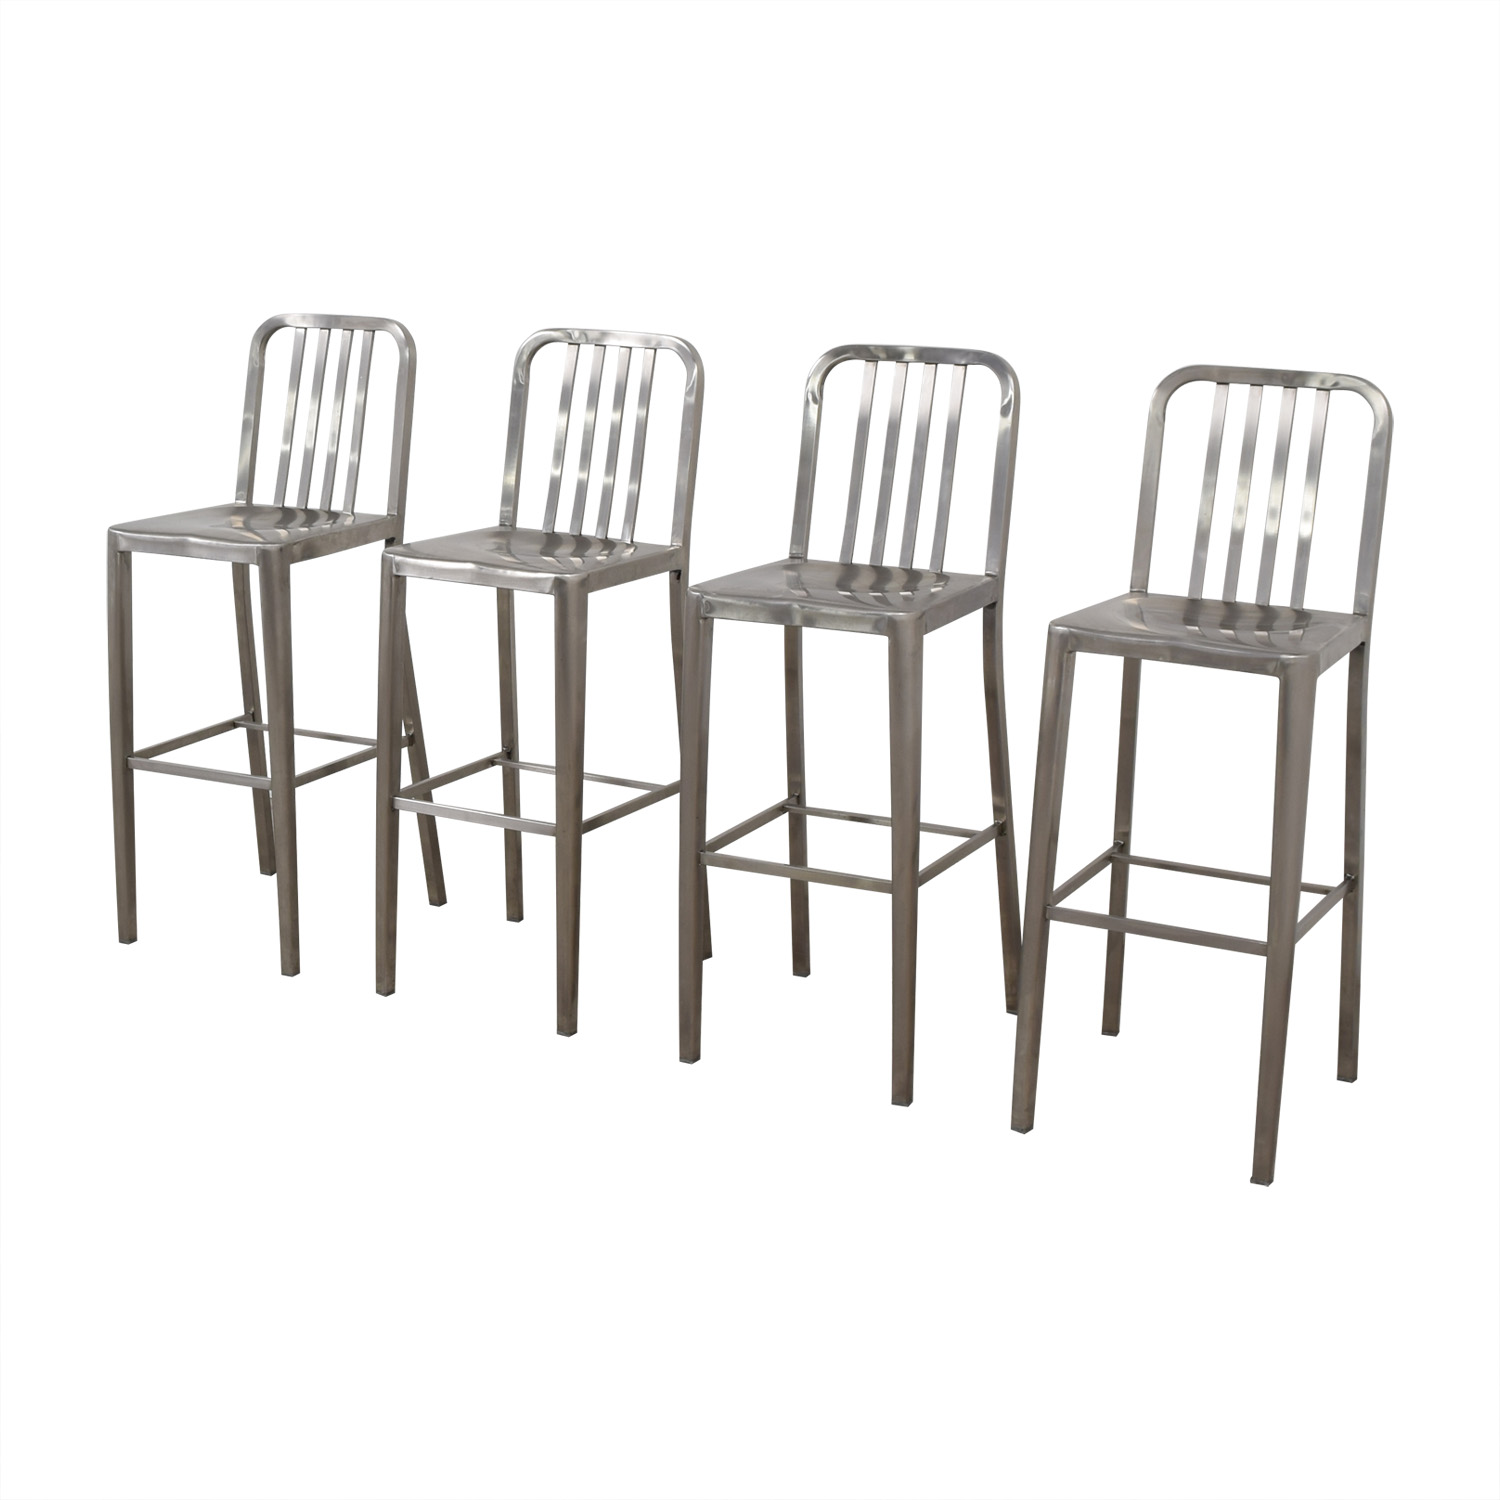 Chrome Bar Stools silver